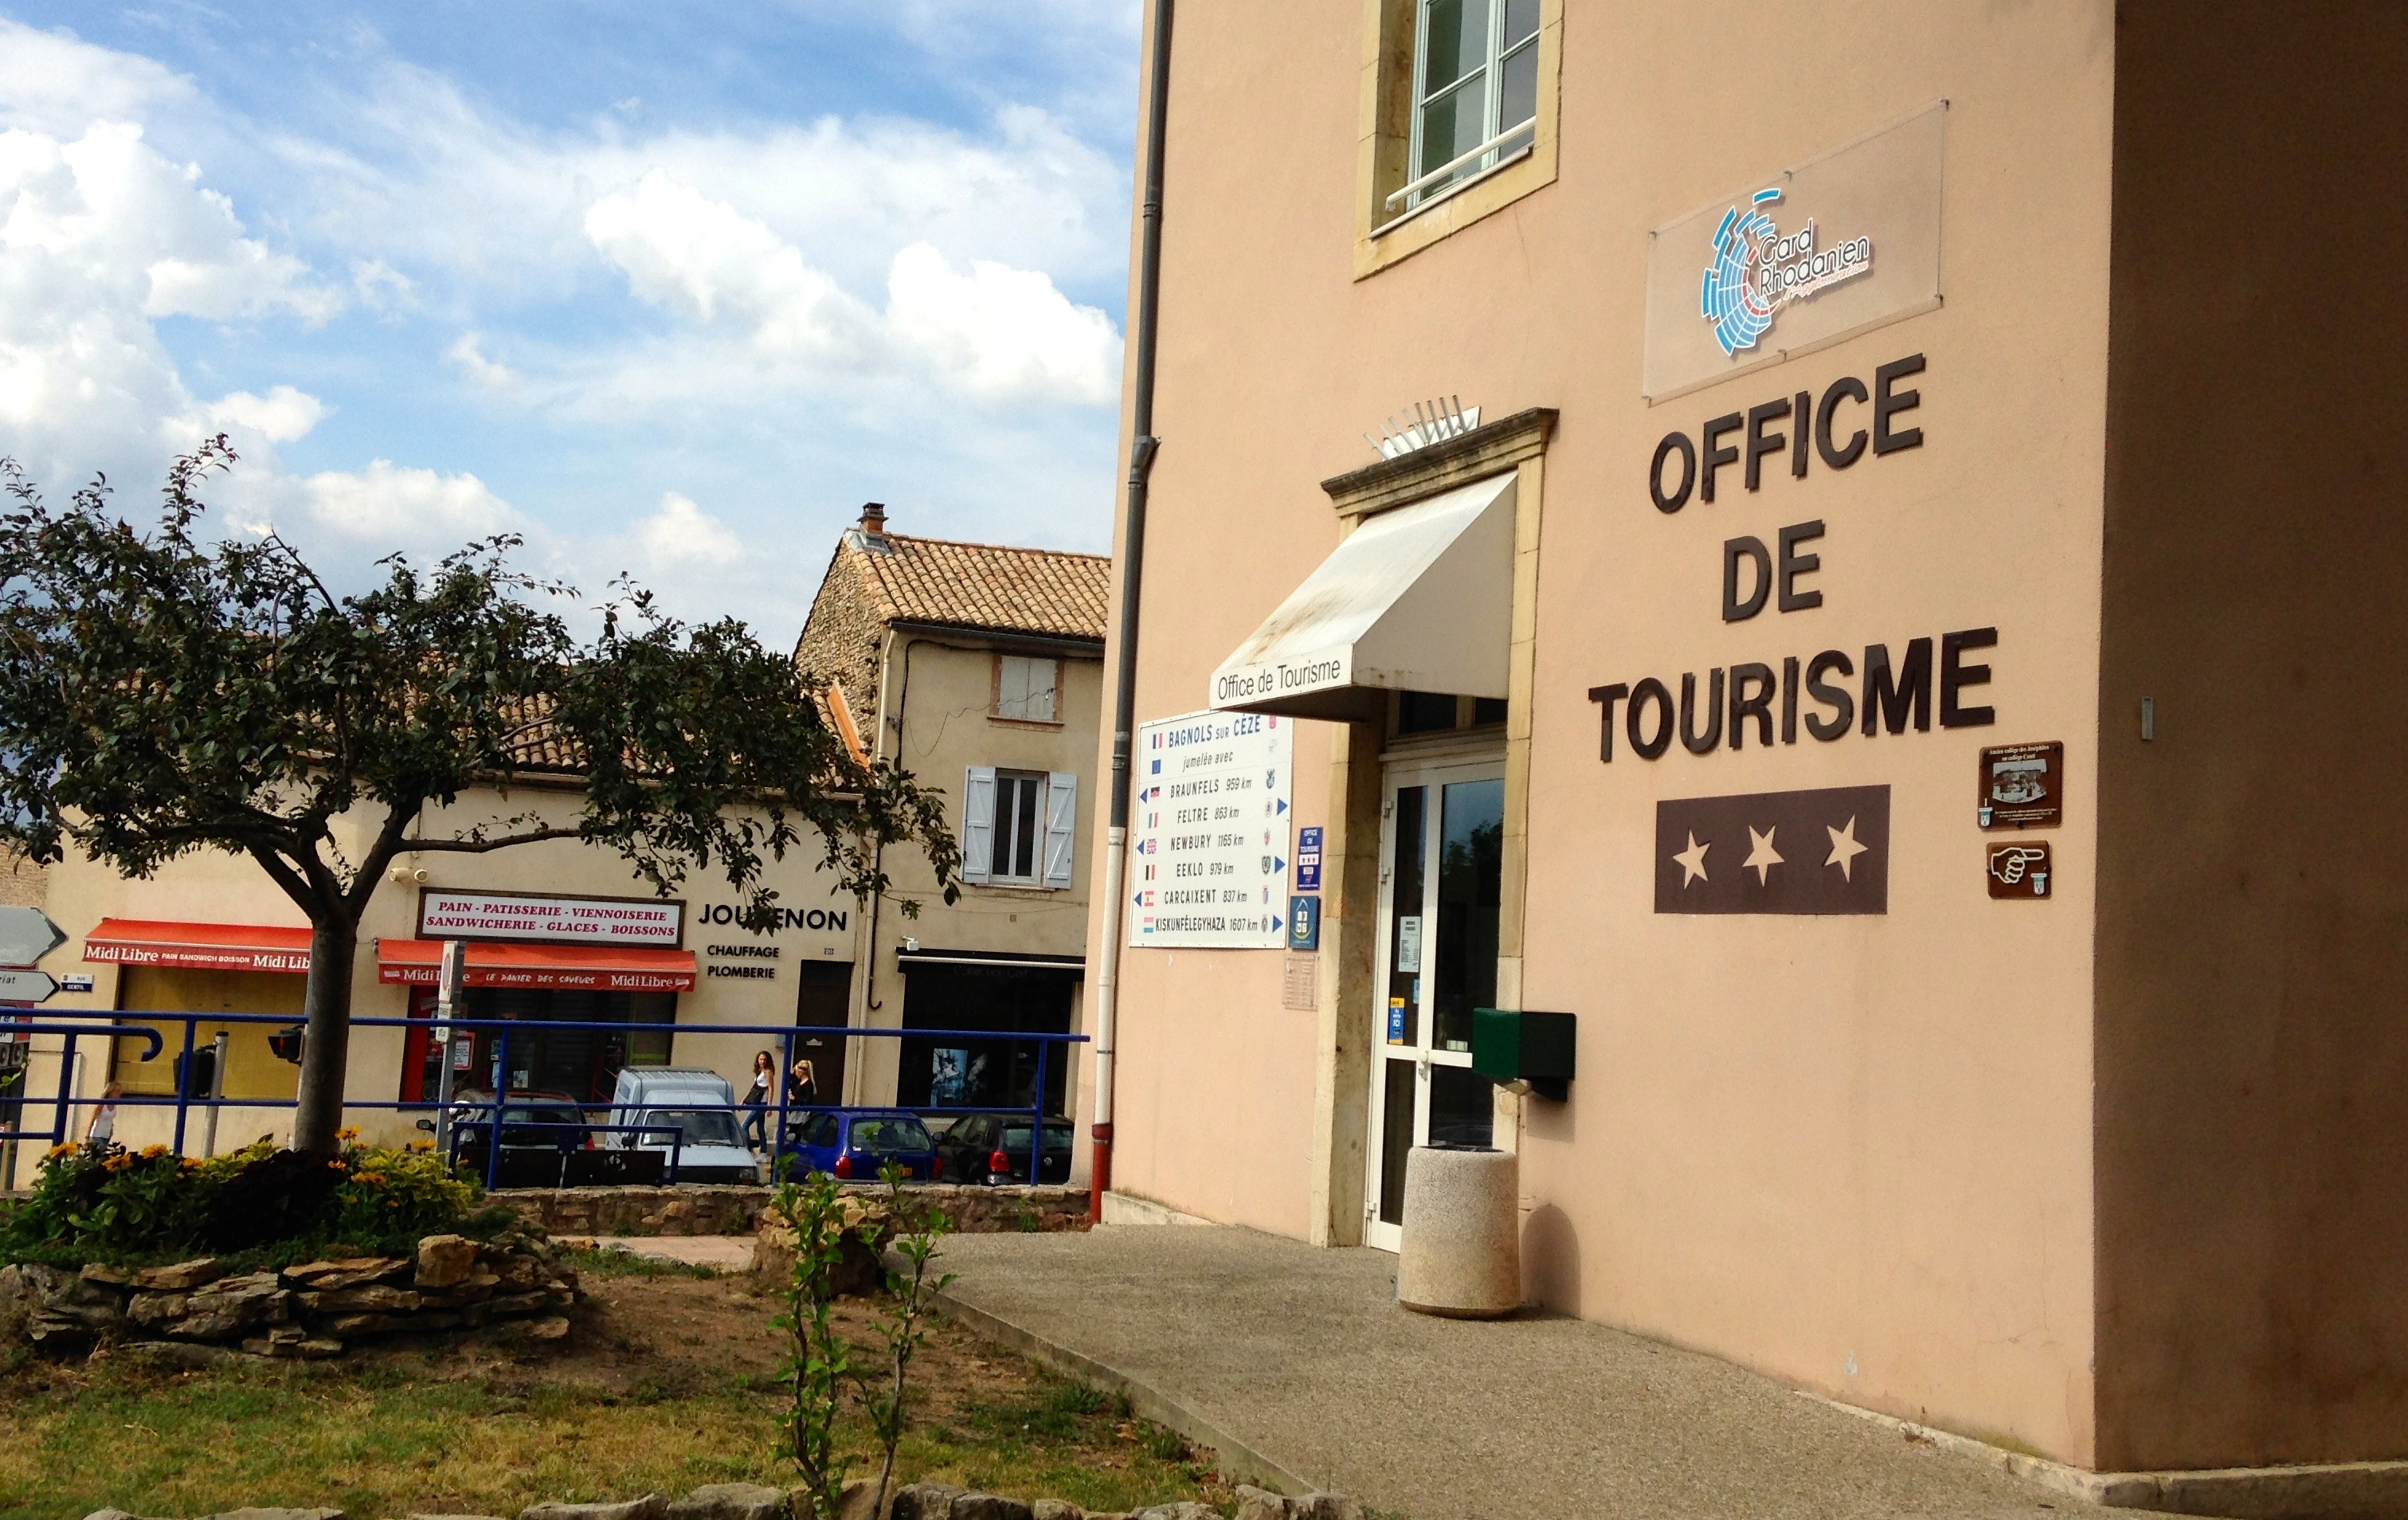 Gard rhodanien dans les offices de tourisme on attend - Office du tourisme seignosse le penon ...